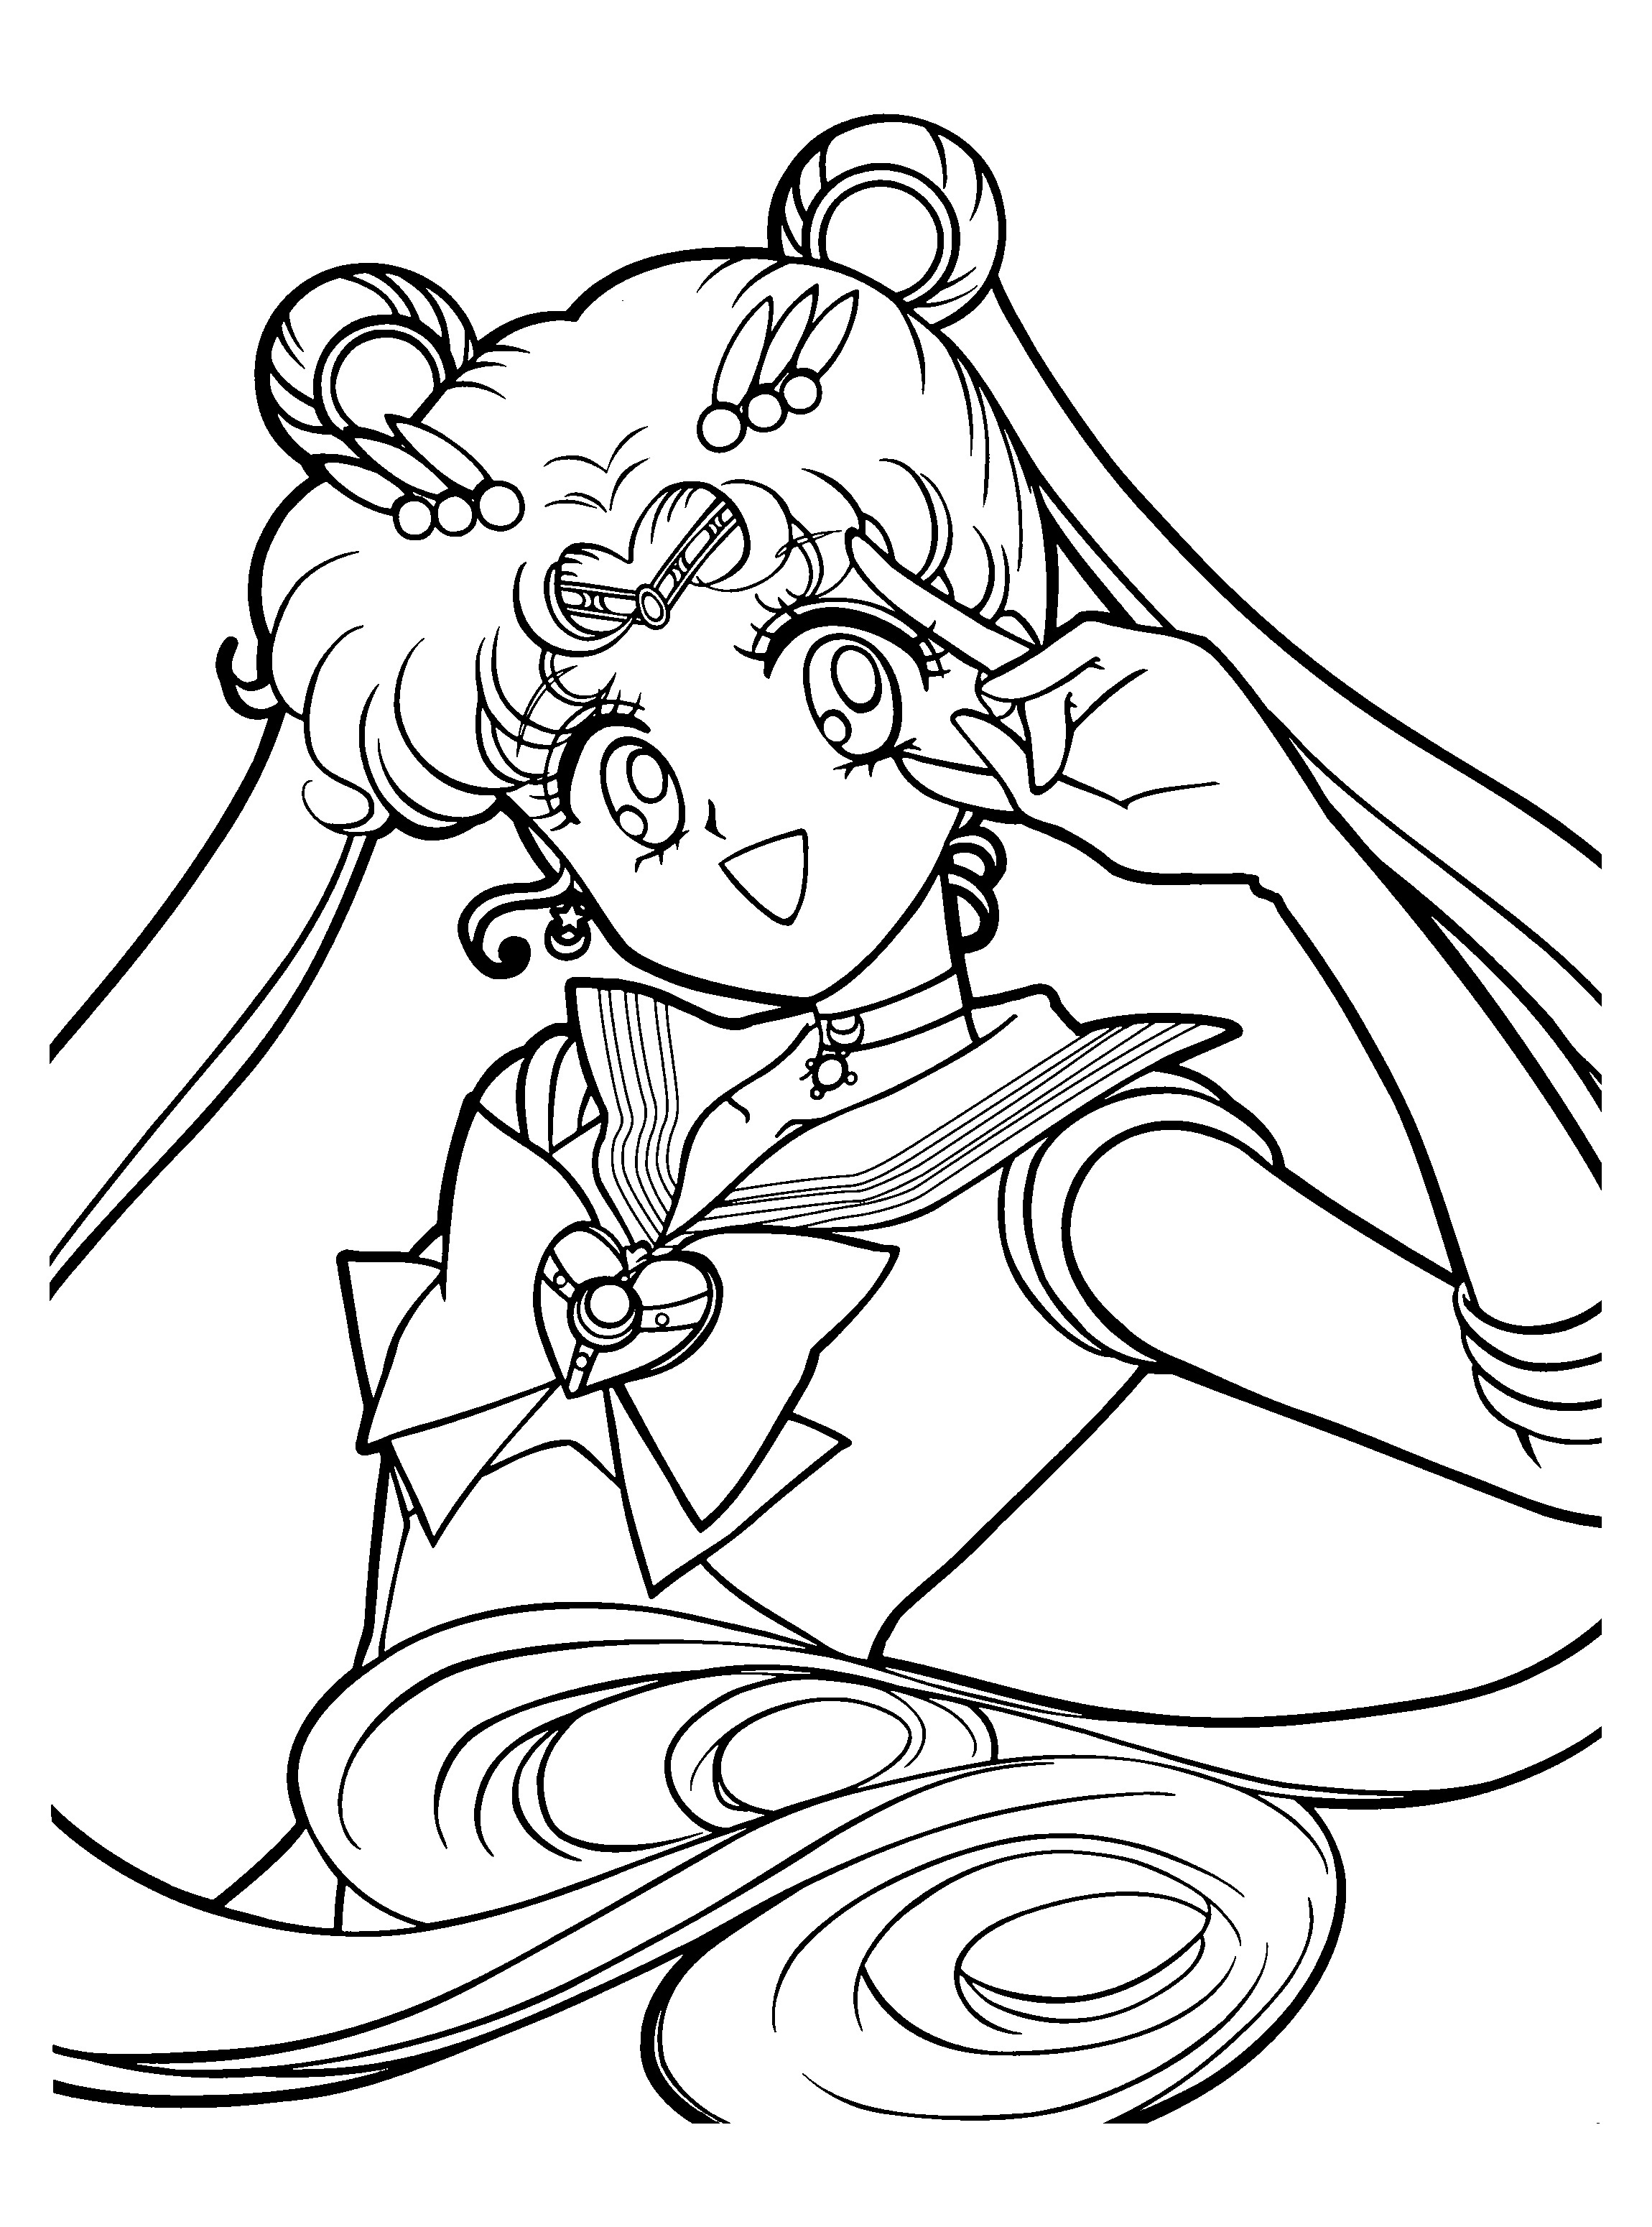 Free Printable Sailor Moon Coloring Pages For Kids | 3100x2300